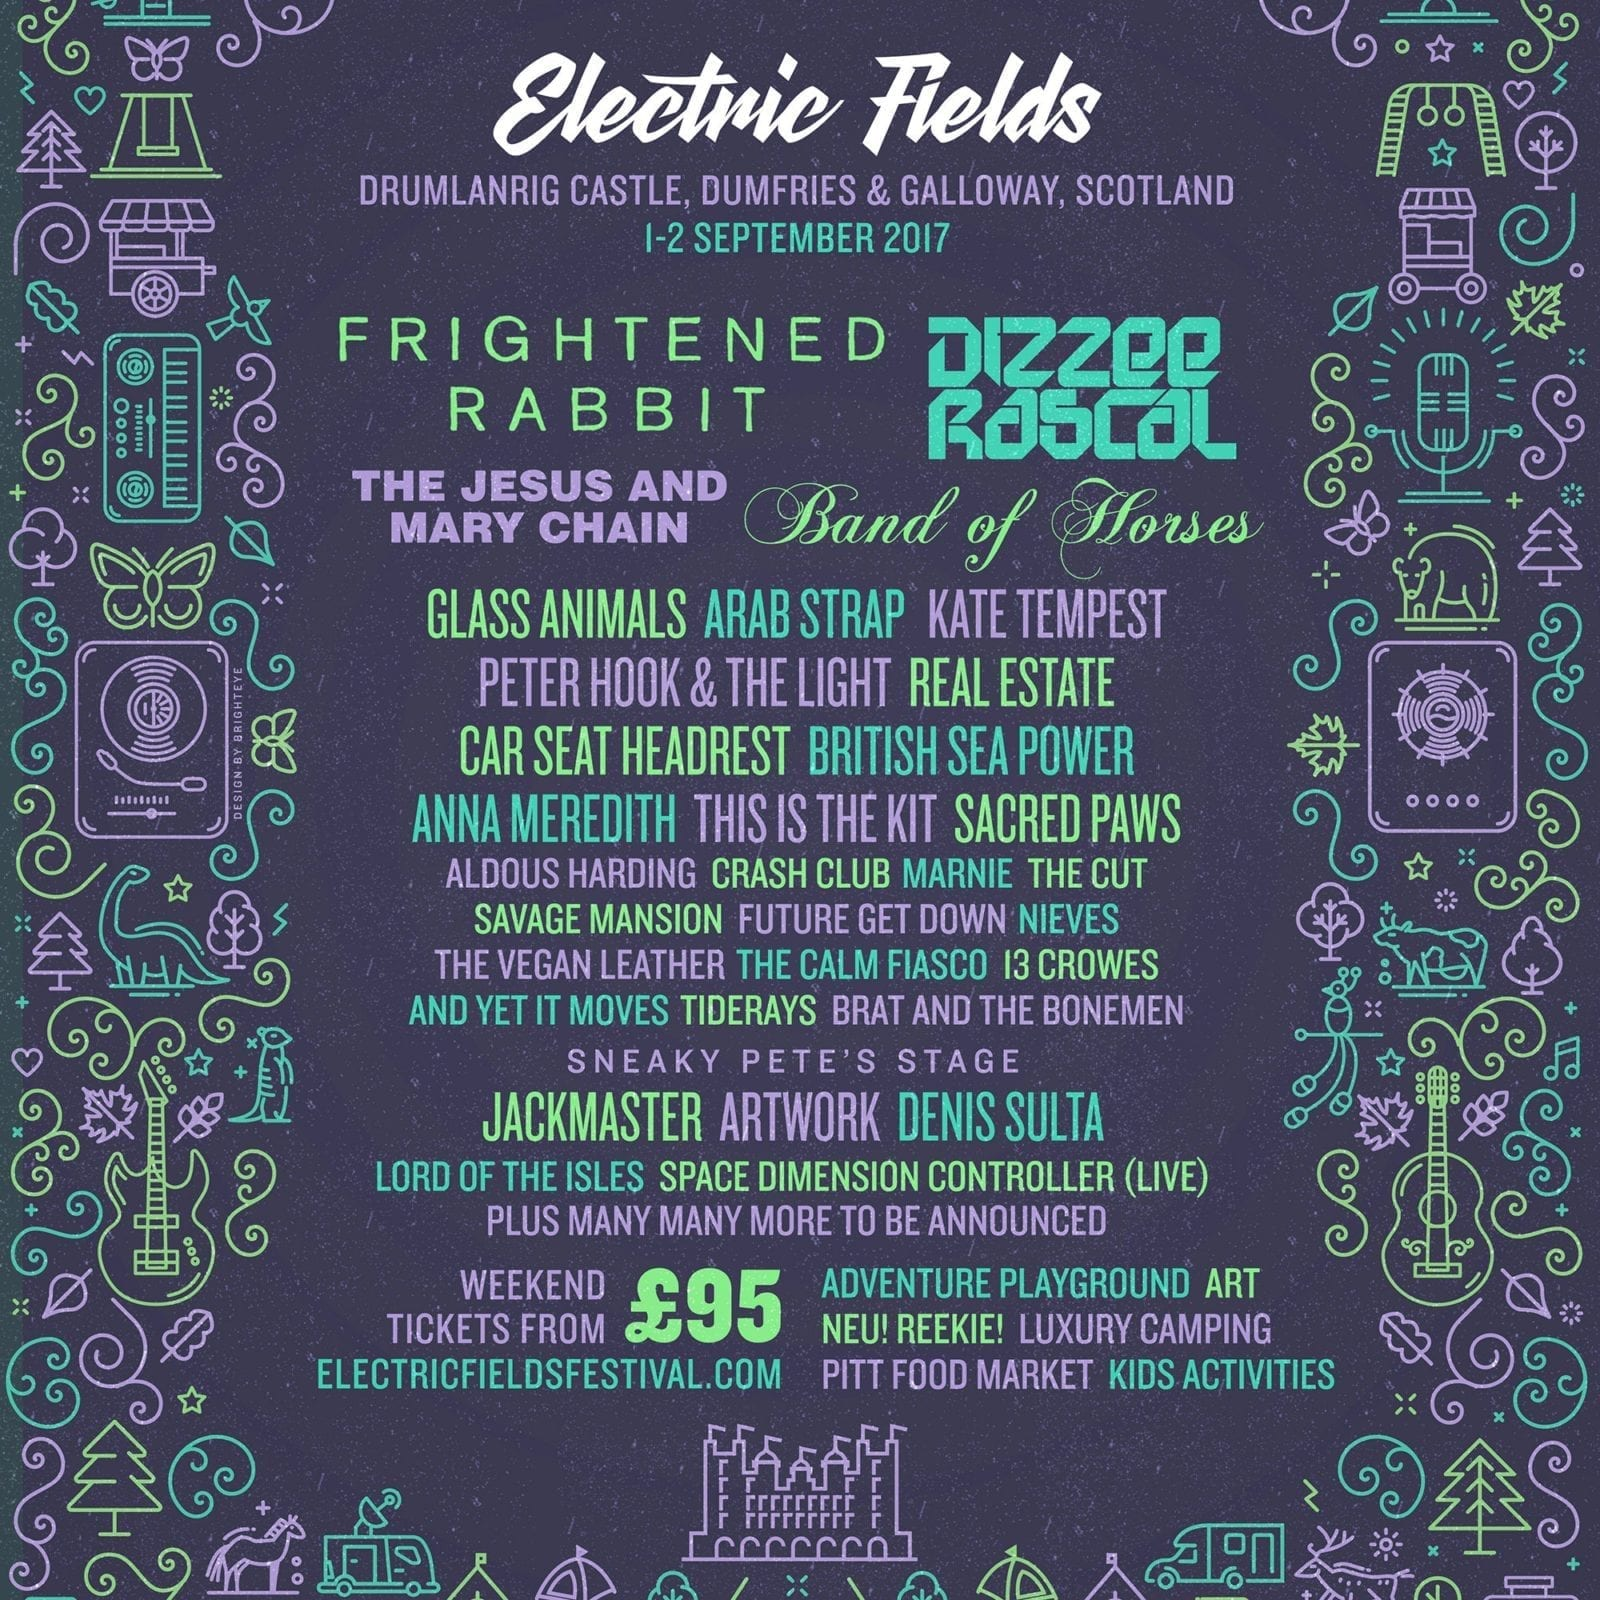 Electric Fields 2017 Festival Poster